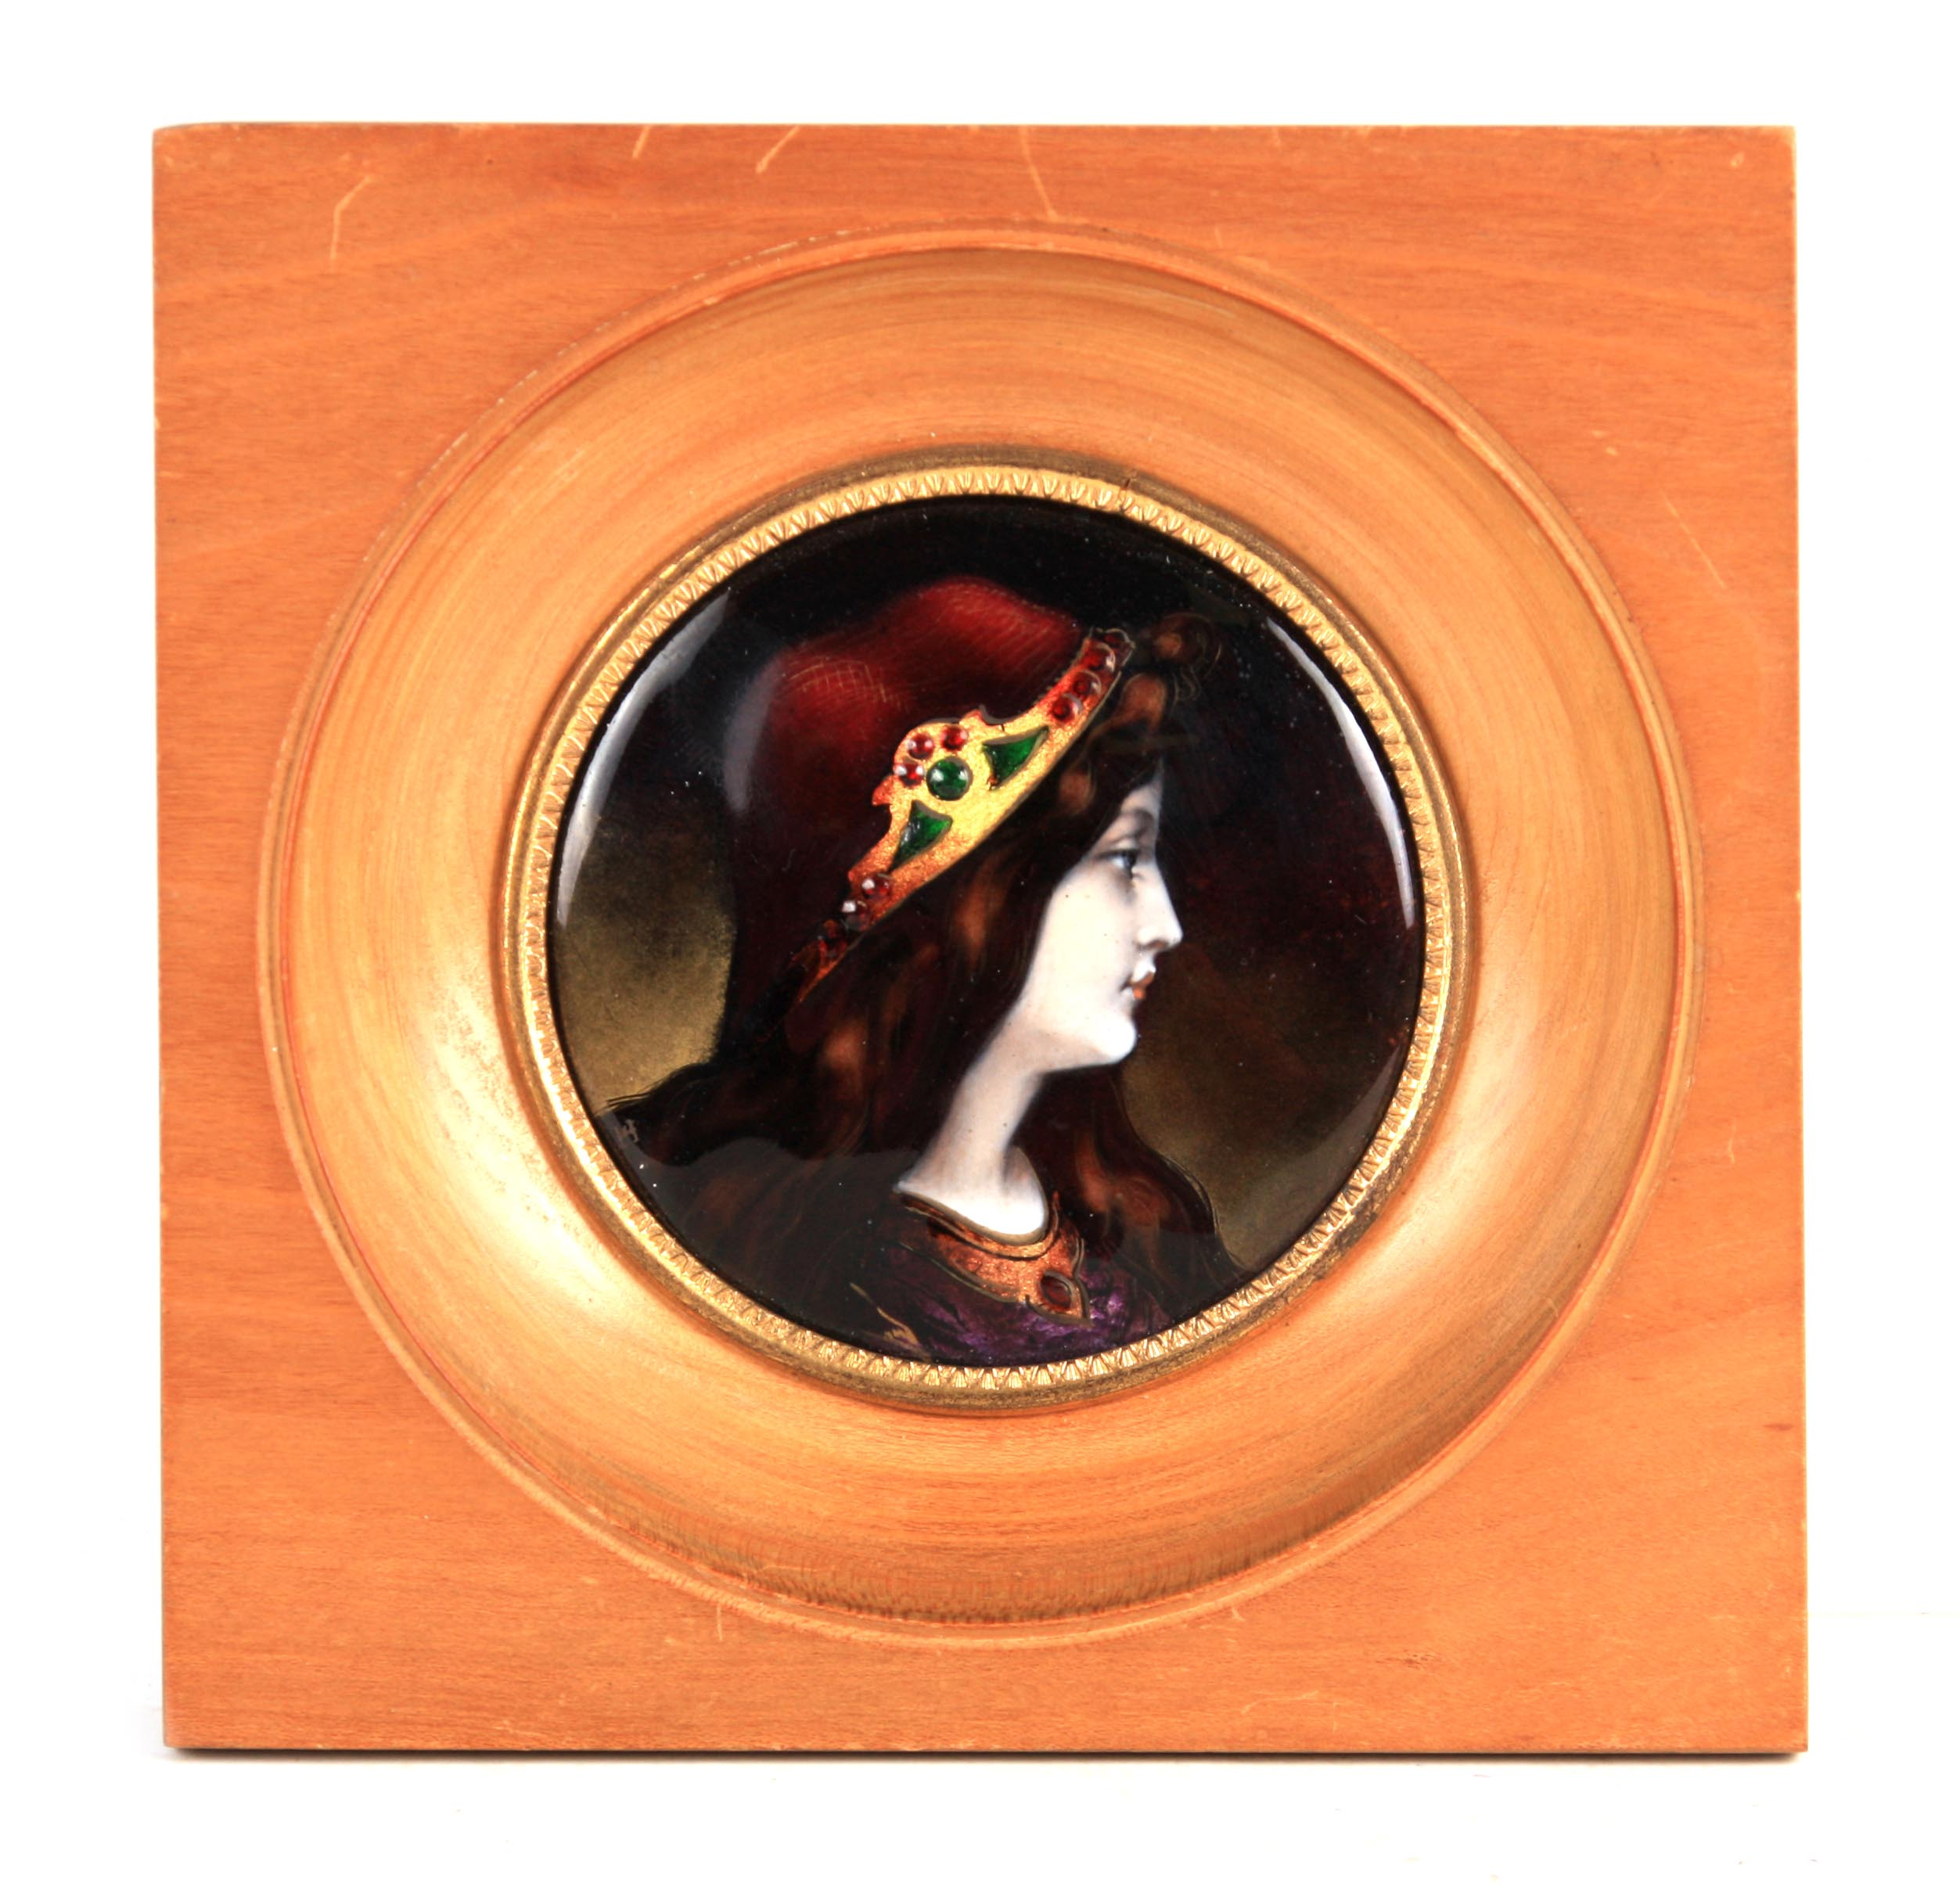 A PRE RAPHAELITE STYLE EARLY 20TH CENTURY LIMOGES ENAMEL CONVEX PANEL depicting the portrait of a